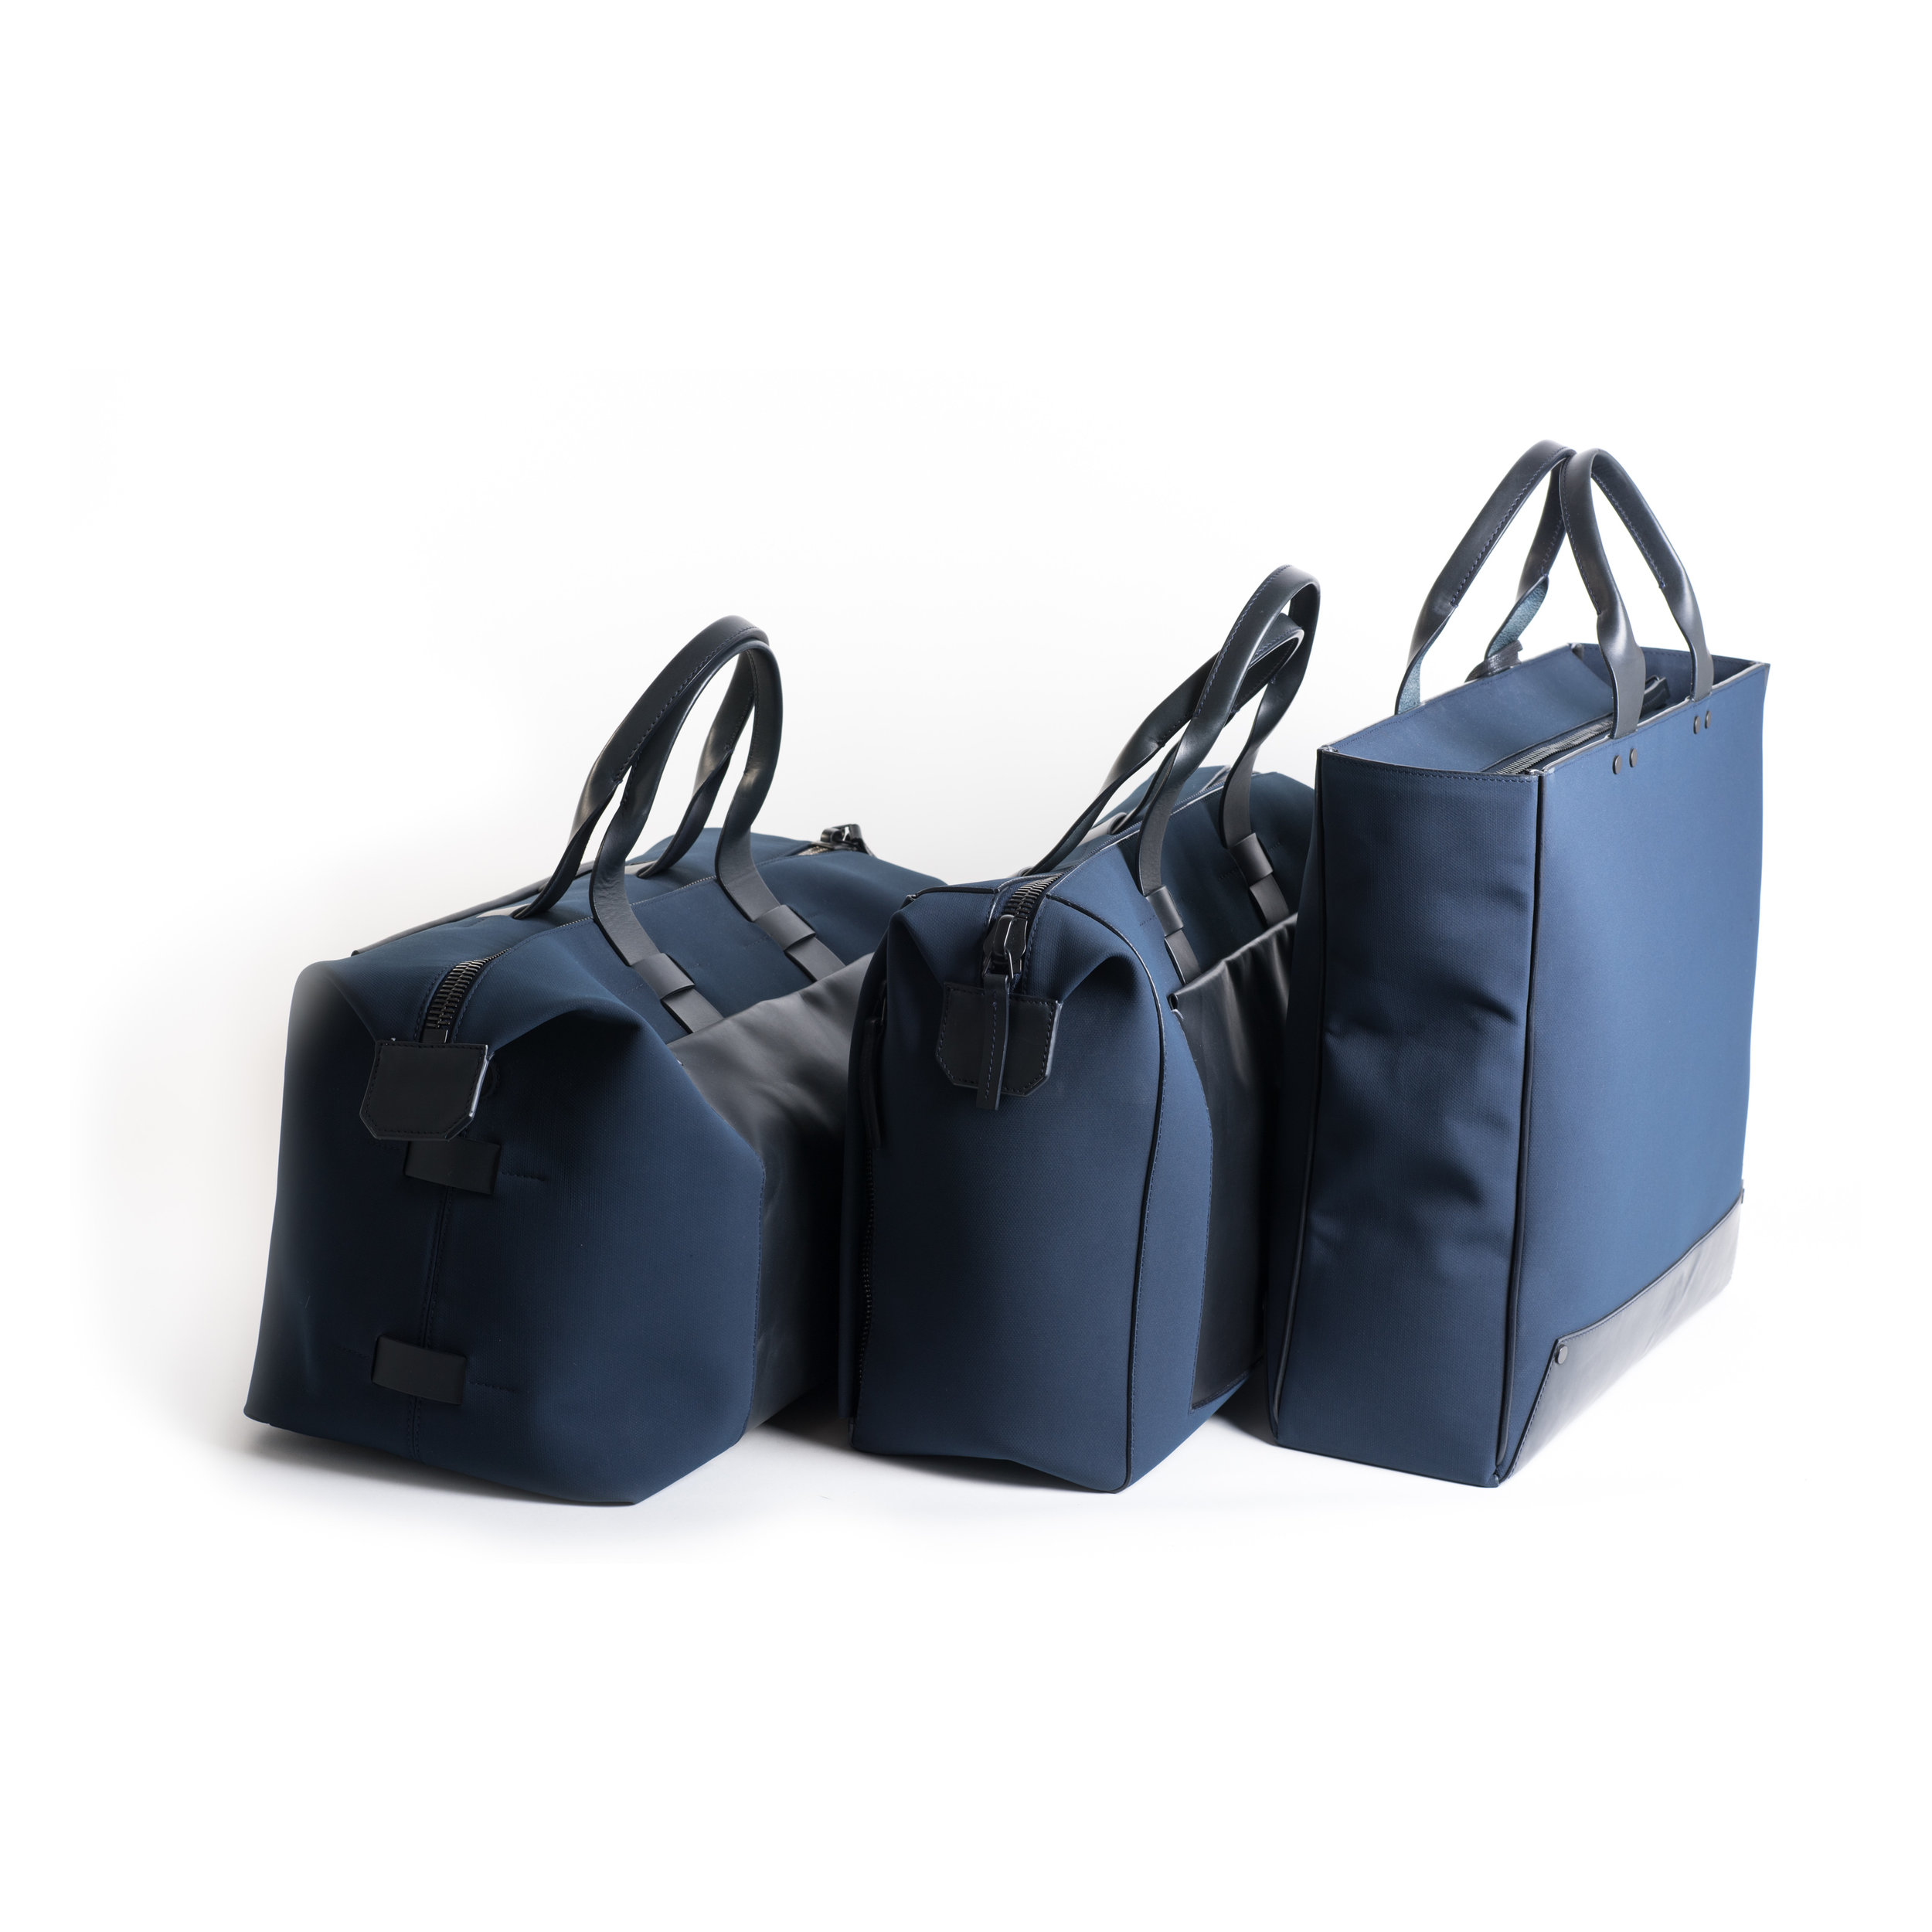 Troubadour Coated Canvas Tote, Day Bag and Weekender